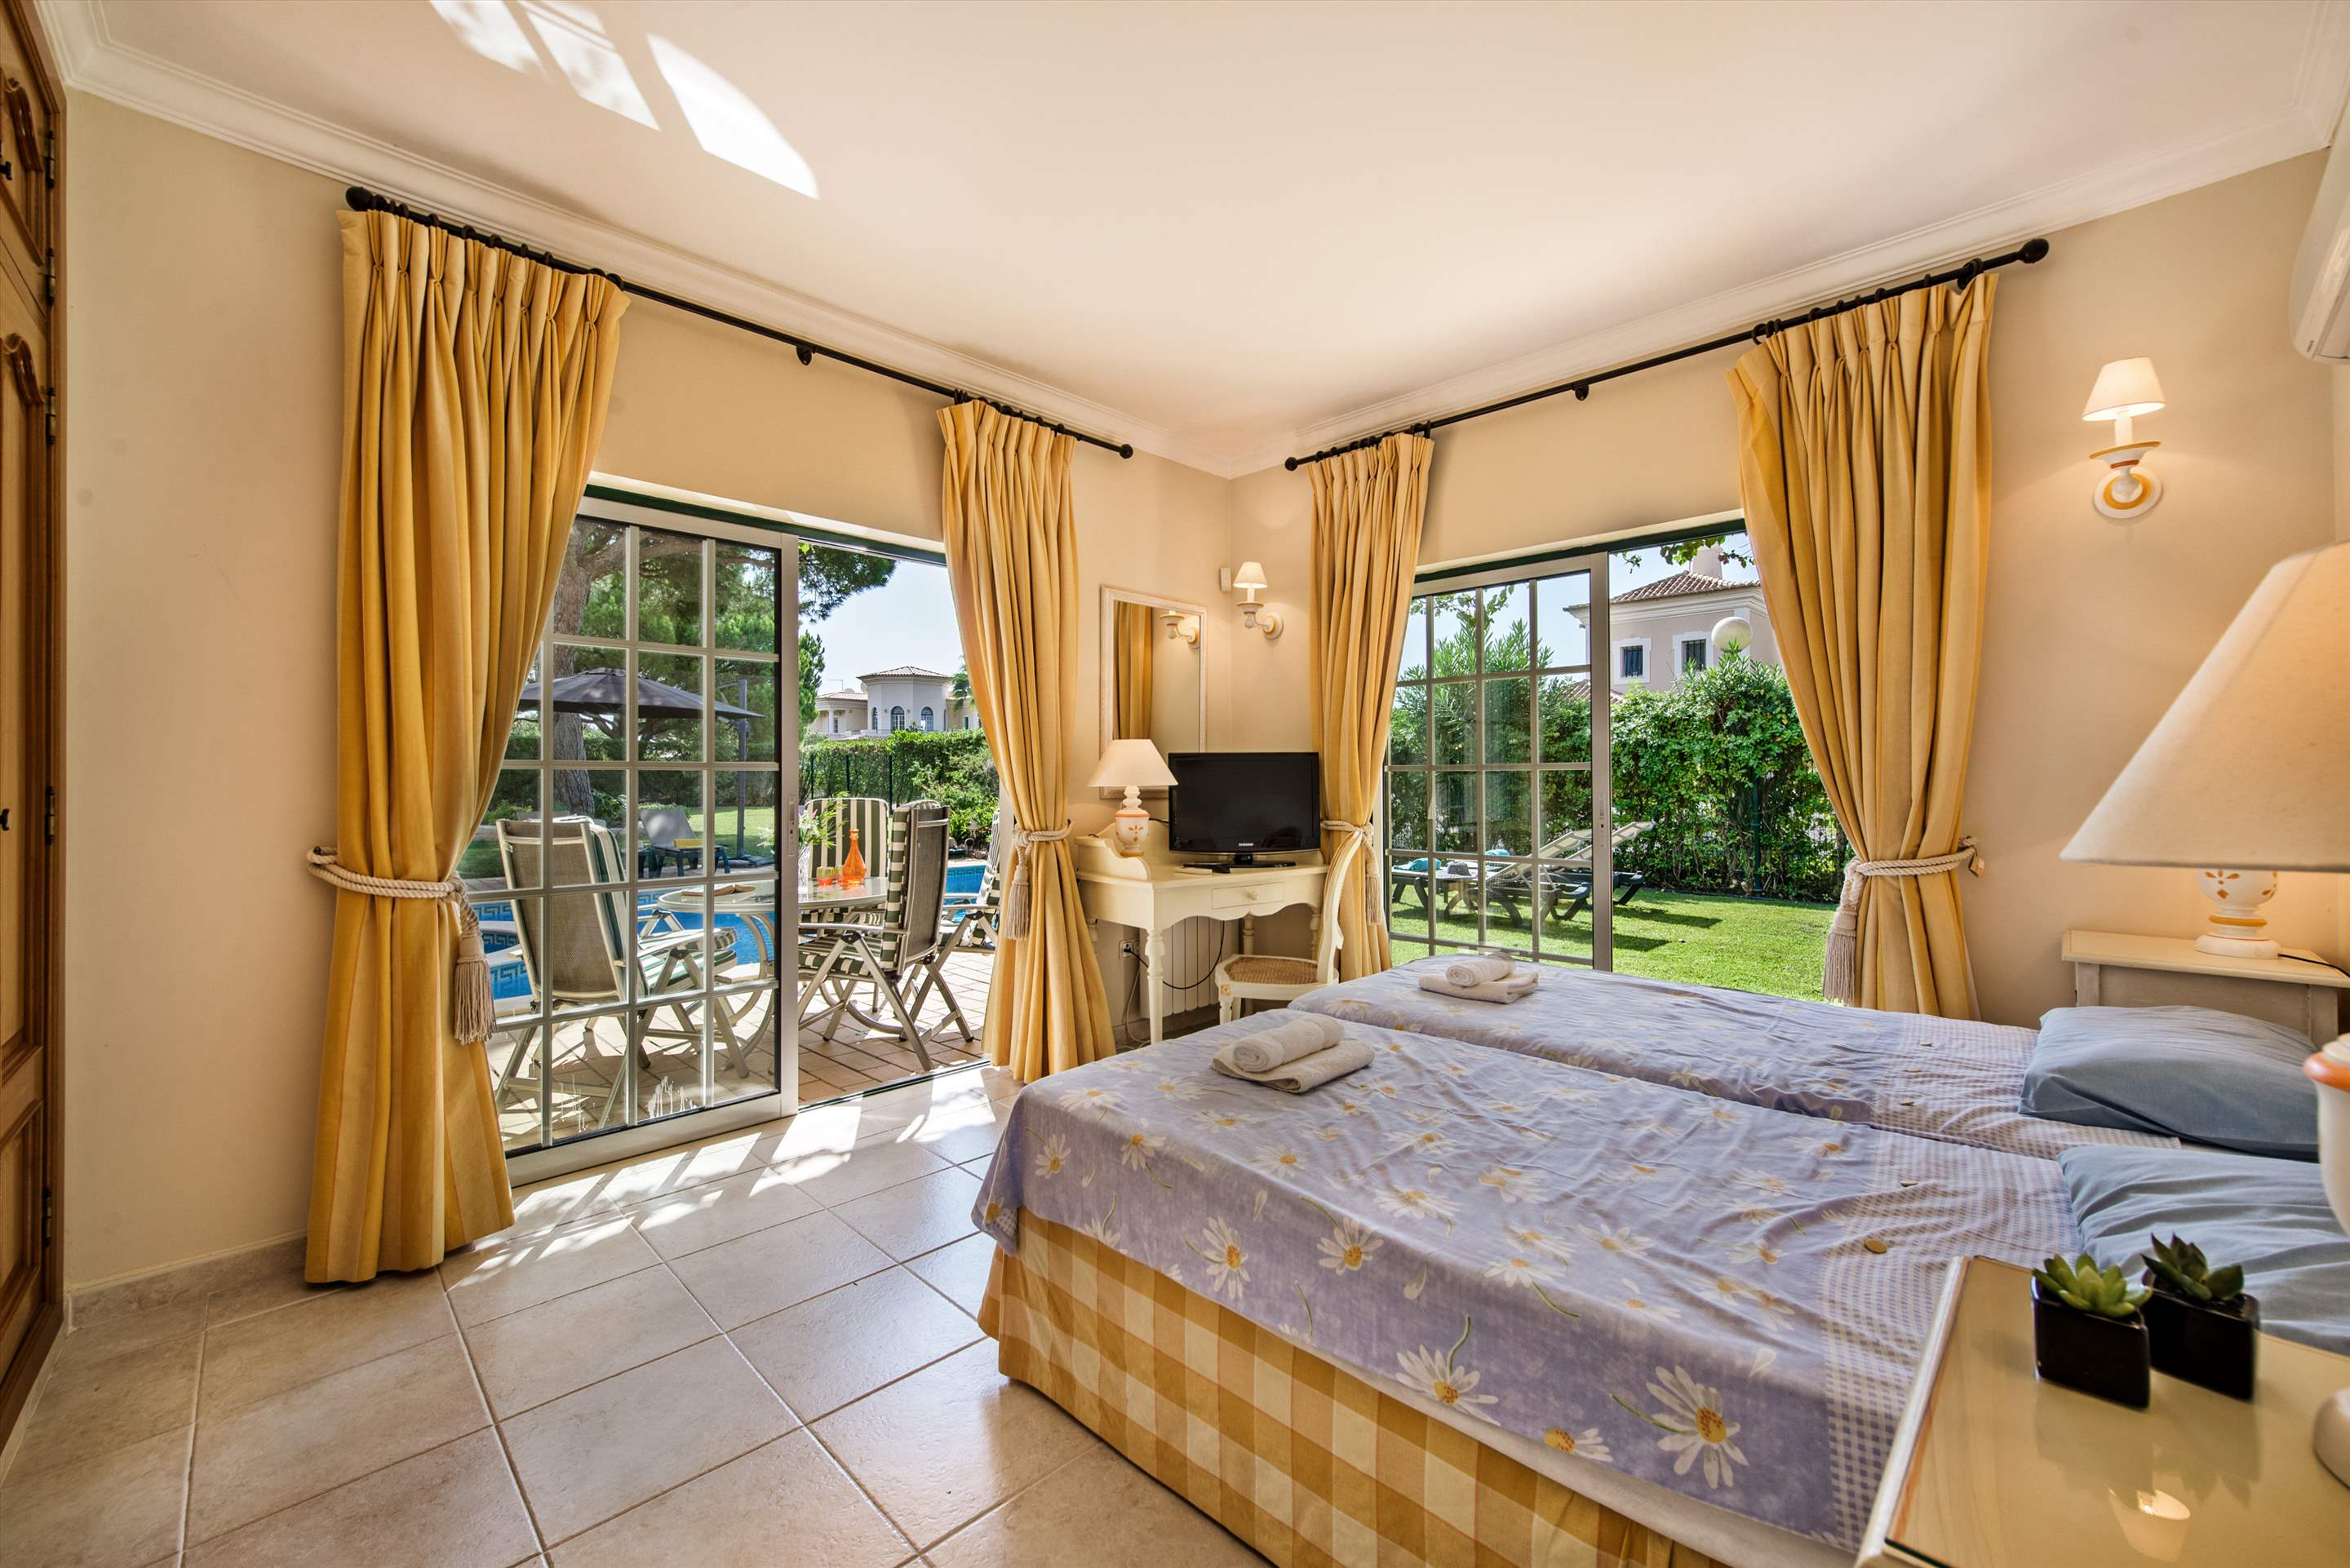 Casa da Encosta, 4 bedroom villa in Vale do Lobo, Algarve Photo #20